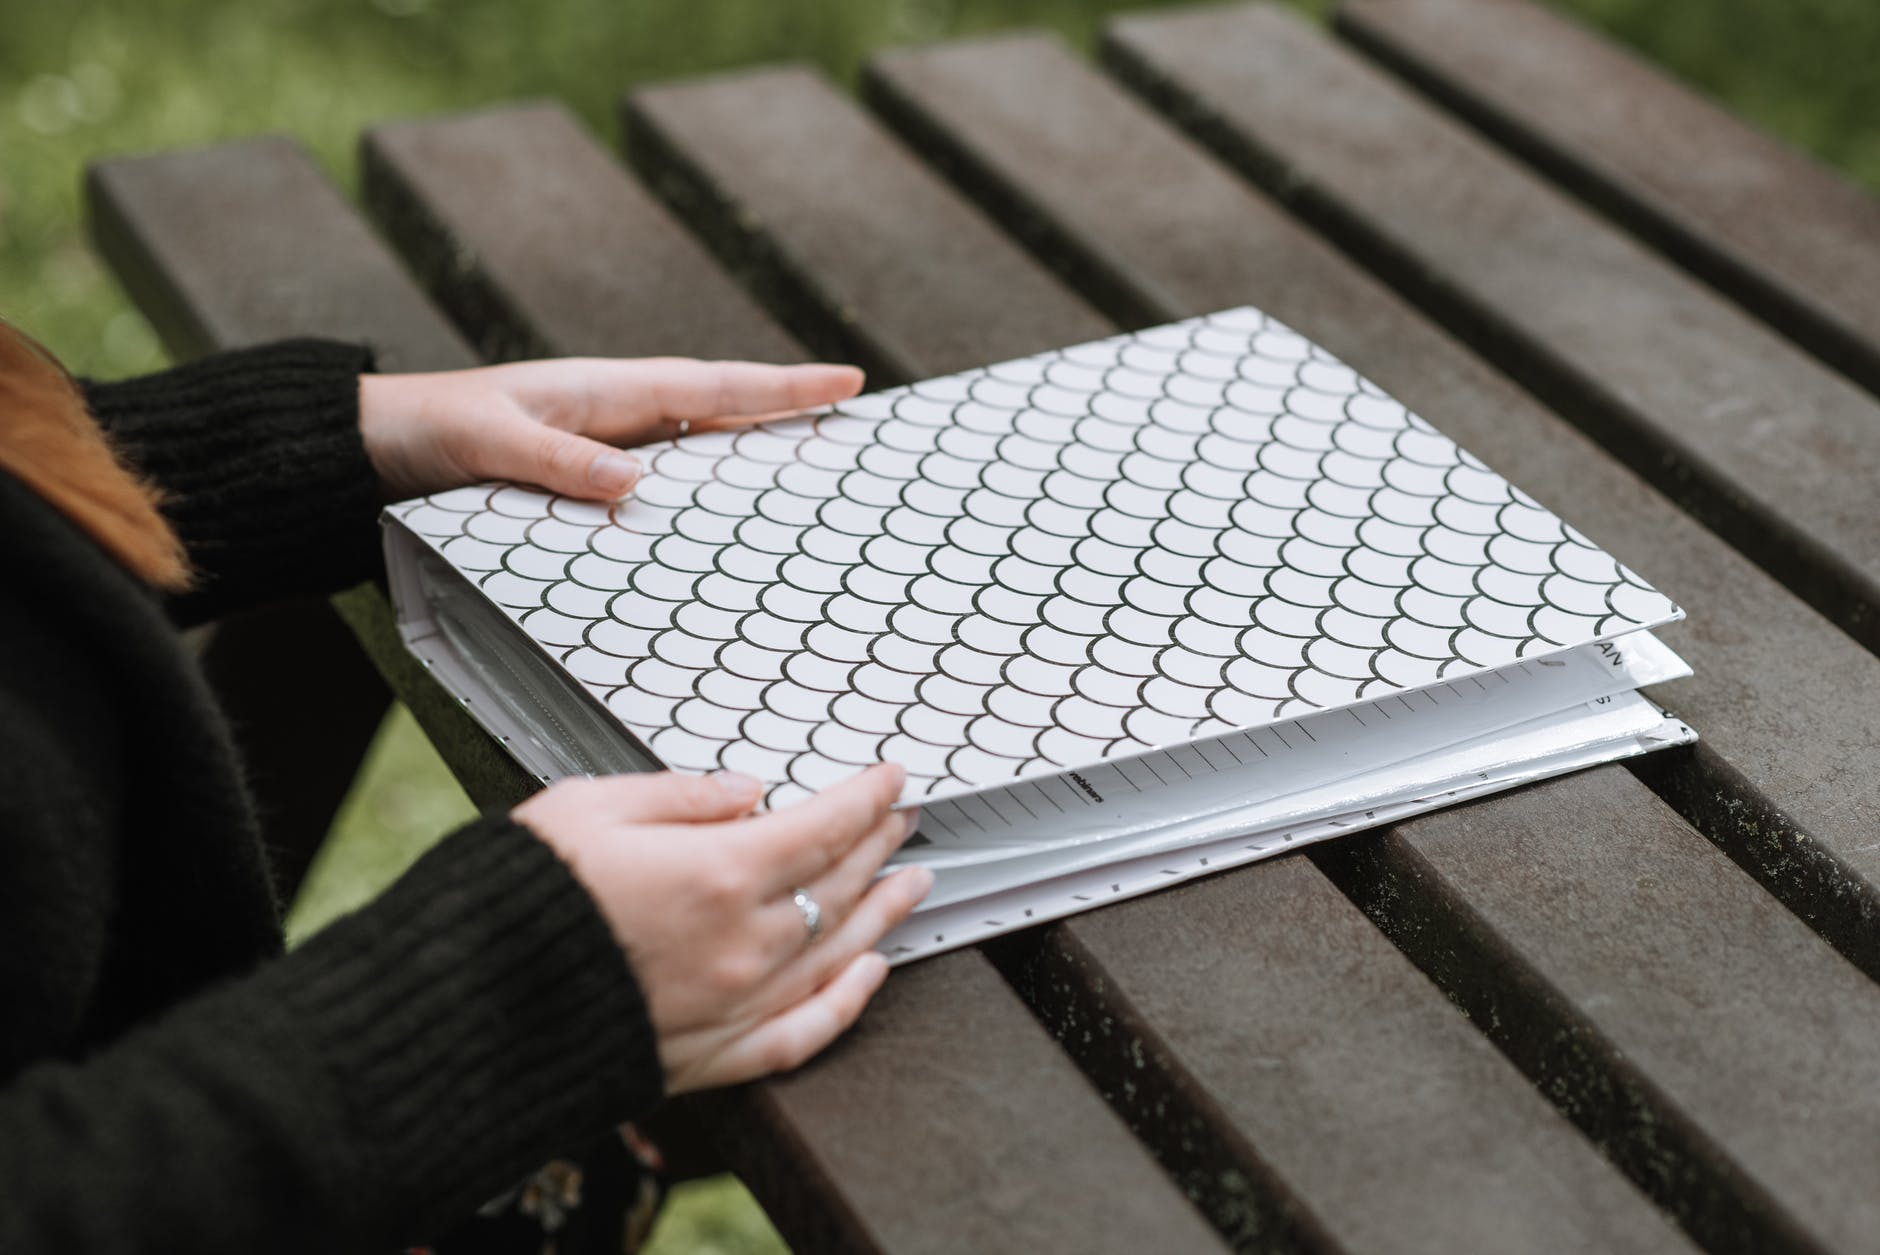 woman with folder in patterns on bench